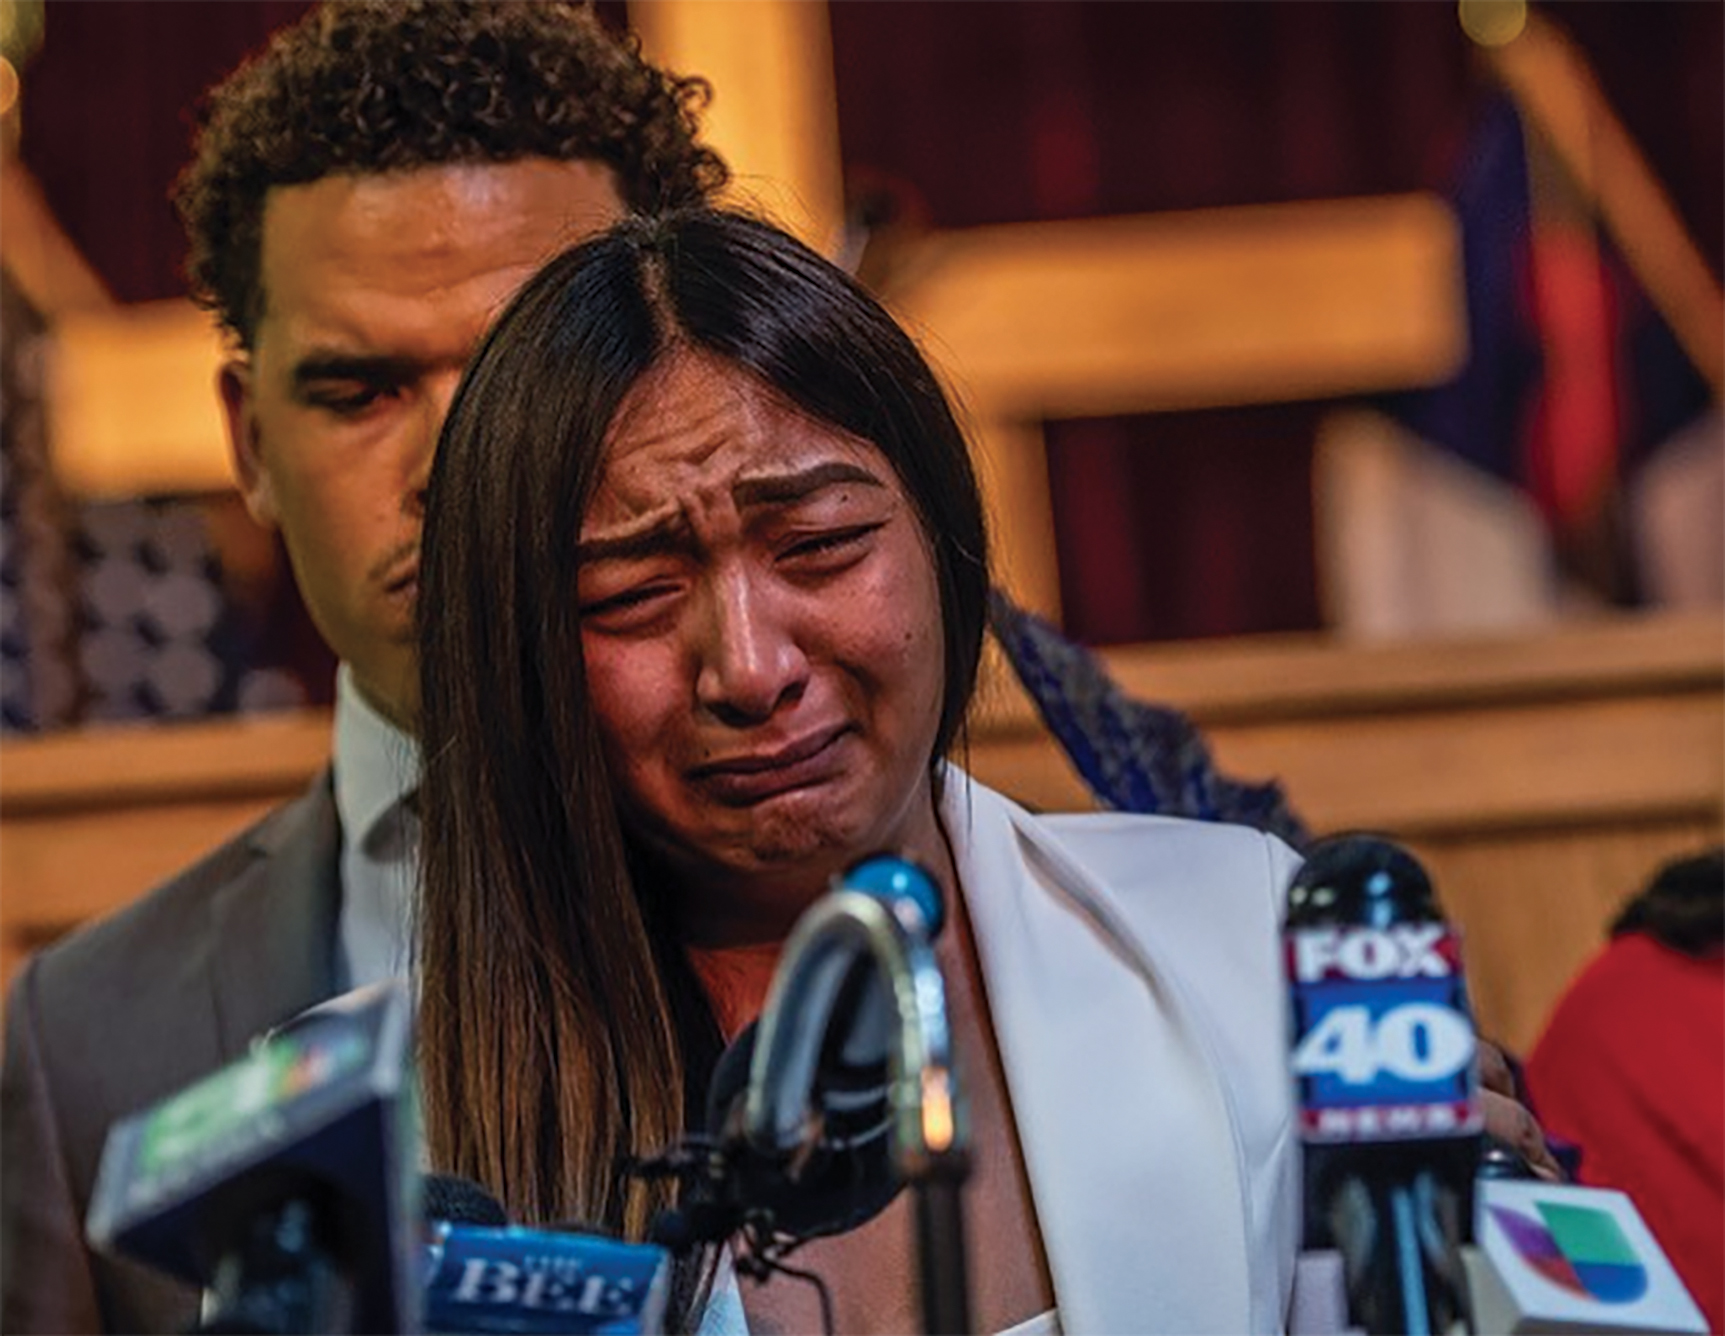 Salena Manni gives a tearful statement in response to the DA's announcement of not charging police officers in the shooting of the father of her children, Stephon Clark. (Photo by Russell Stiger/CBM)